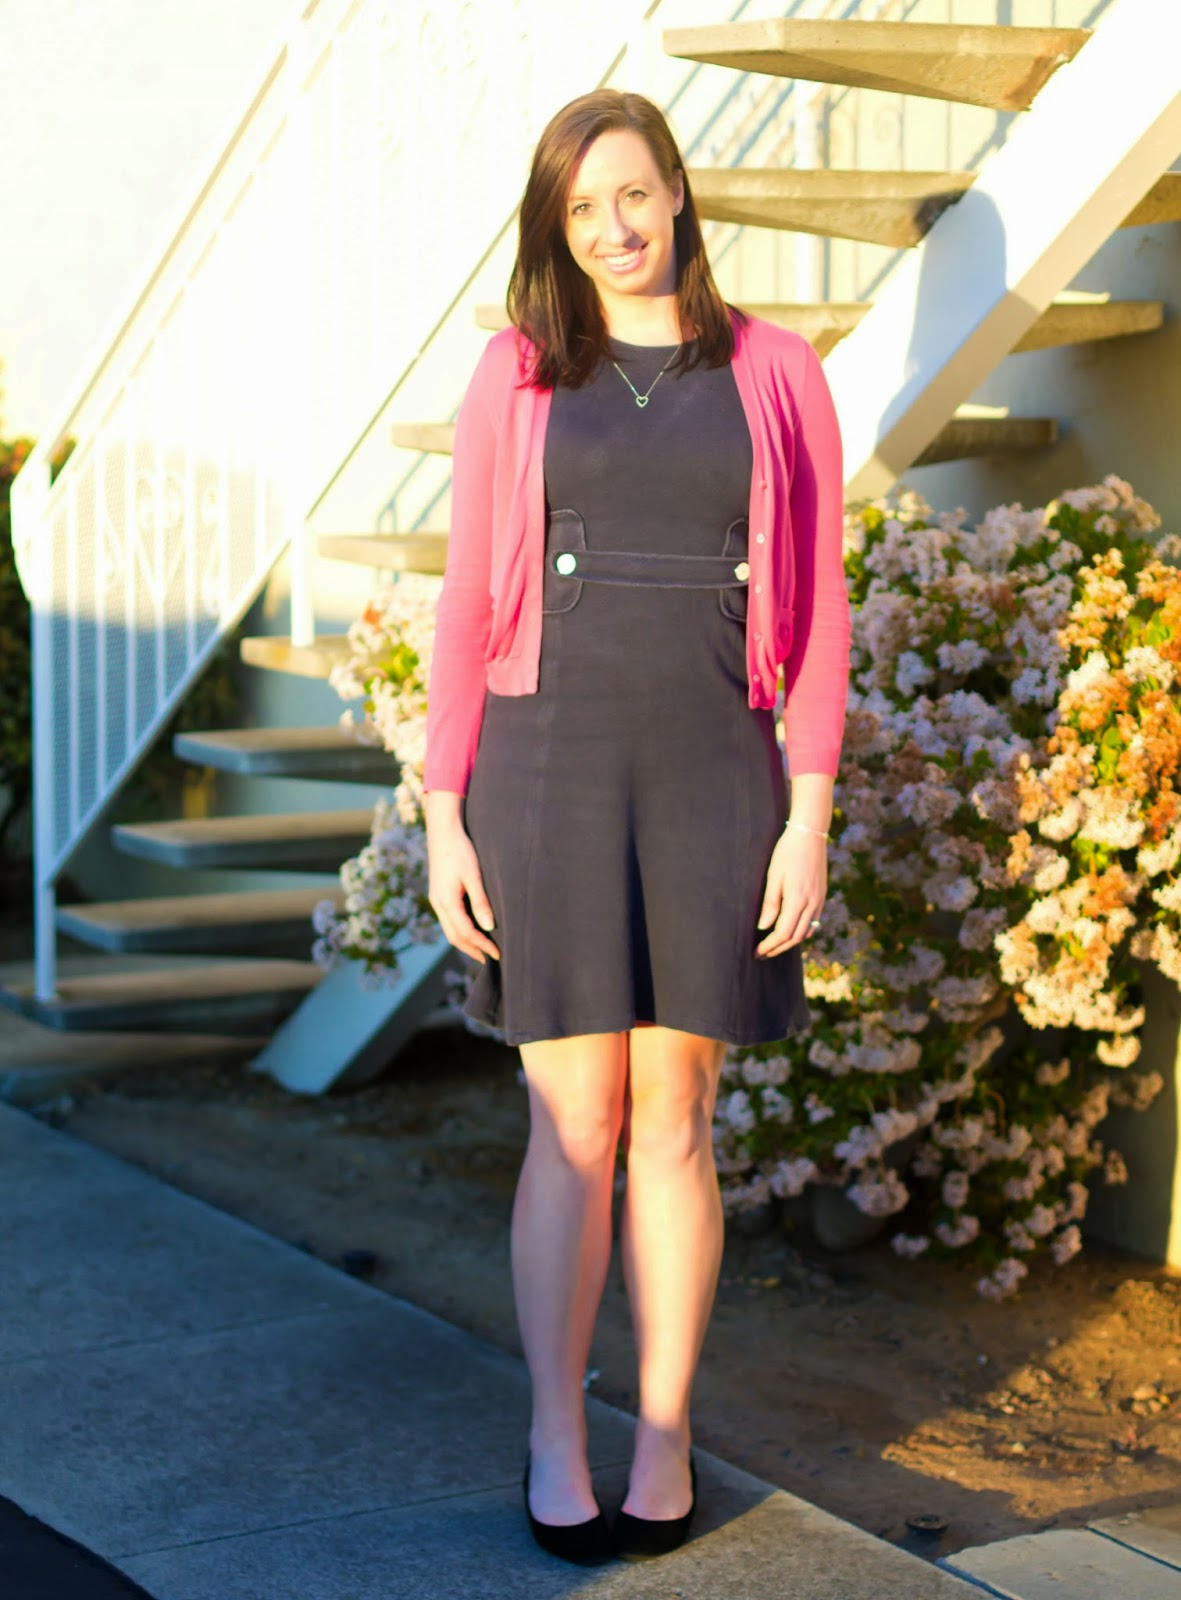 Cardigan with dress: navy blue dress with pink salmon cardigan